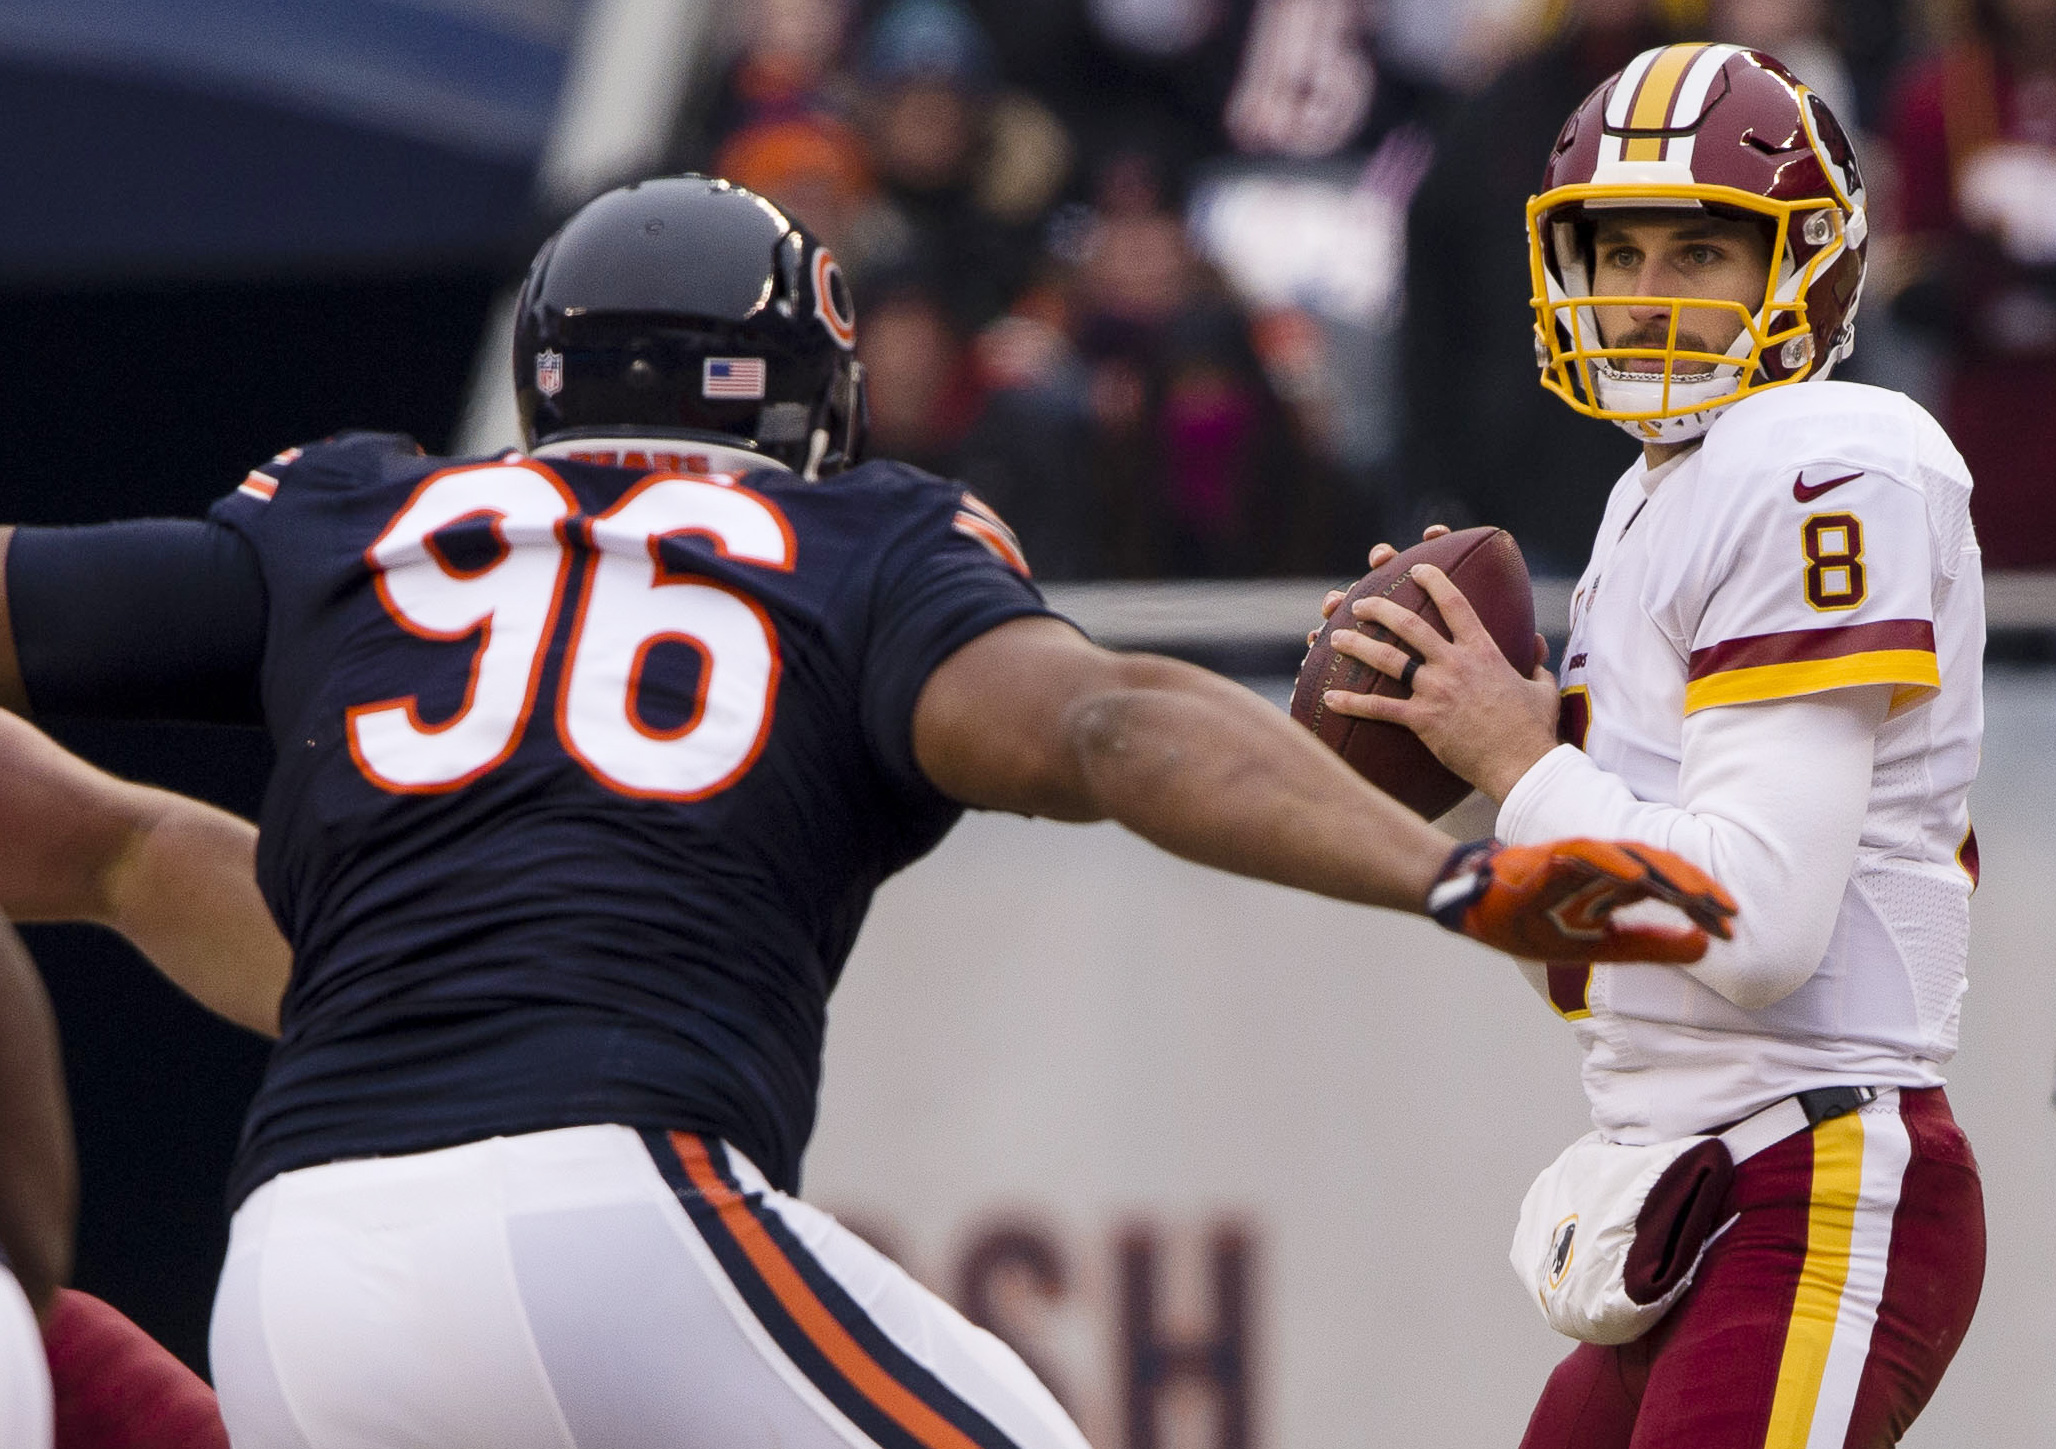 9766745-nfl-washington-redskins-at-chicago-bears